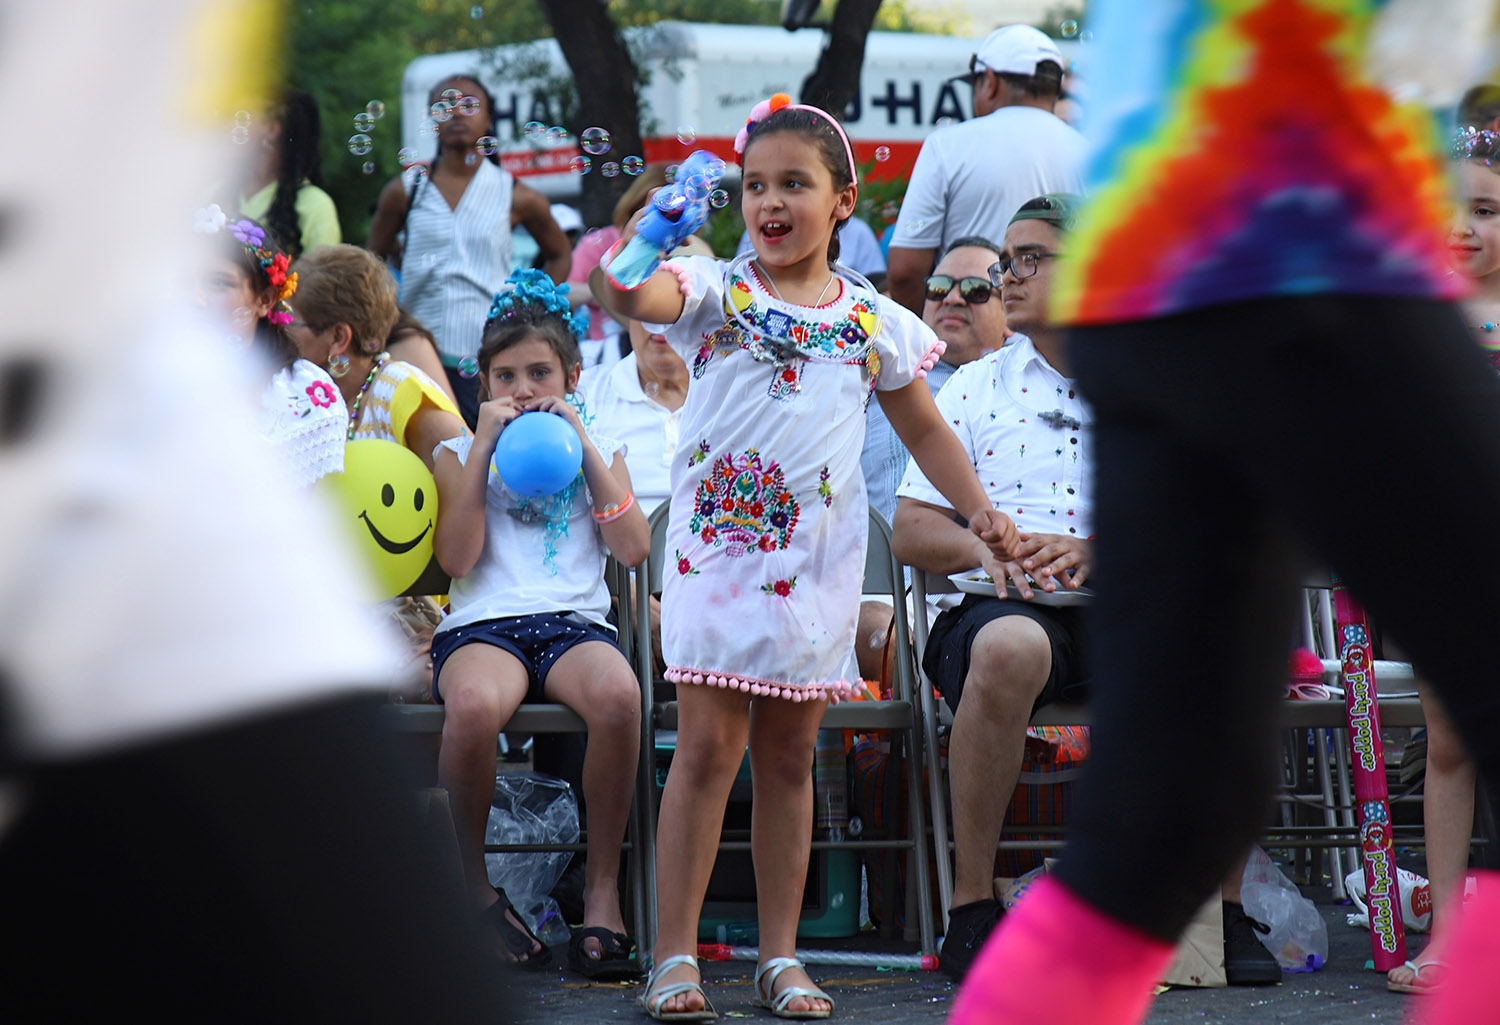 A young girl shoots her bubble gun at runners participating in the Fiesta Fandango Run on Saturday. <em>Photo by Brianna Rodrigue | Heron contributor</em>